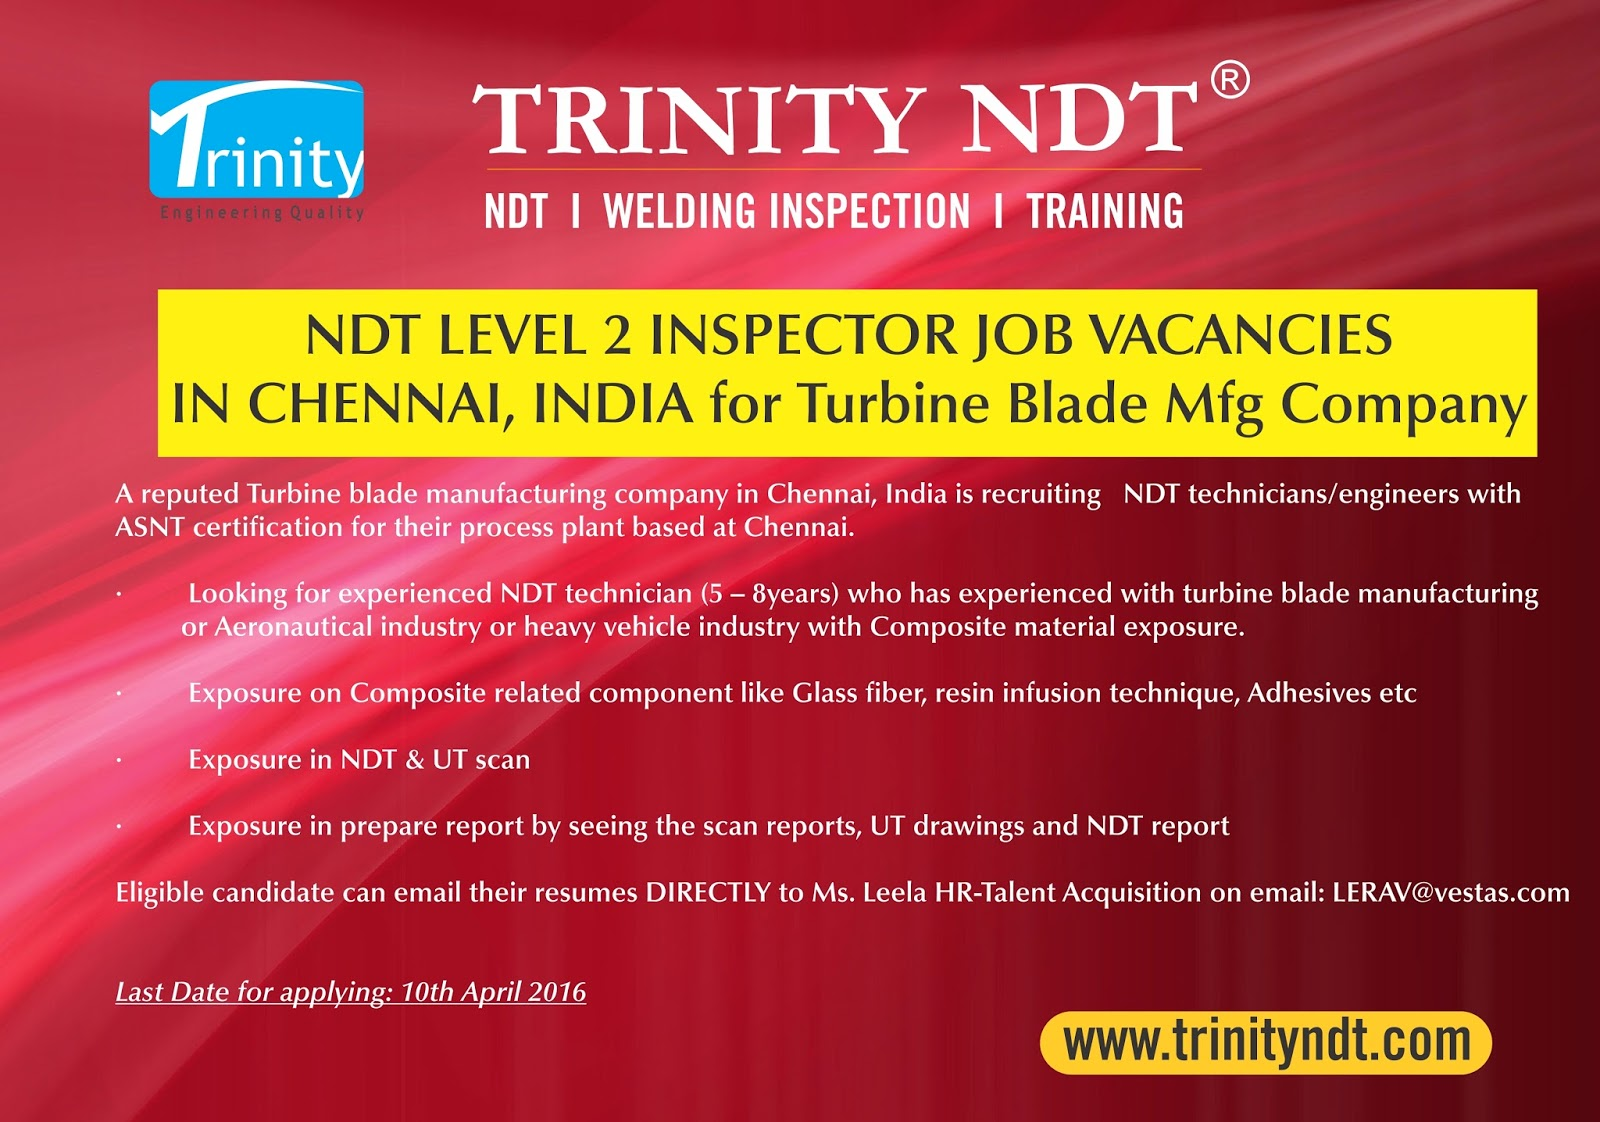 Nabl ndt labs ndt welding inspection training chennai mumbai ndt level ii technician job vacancies in chennai india for a reputed turbine blade mfg company xflitez Images